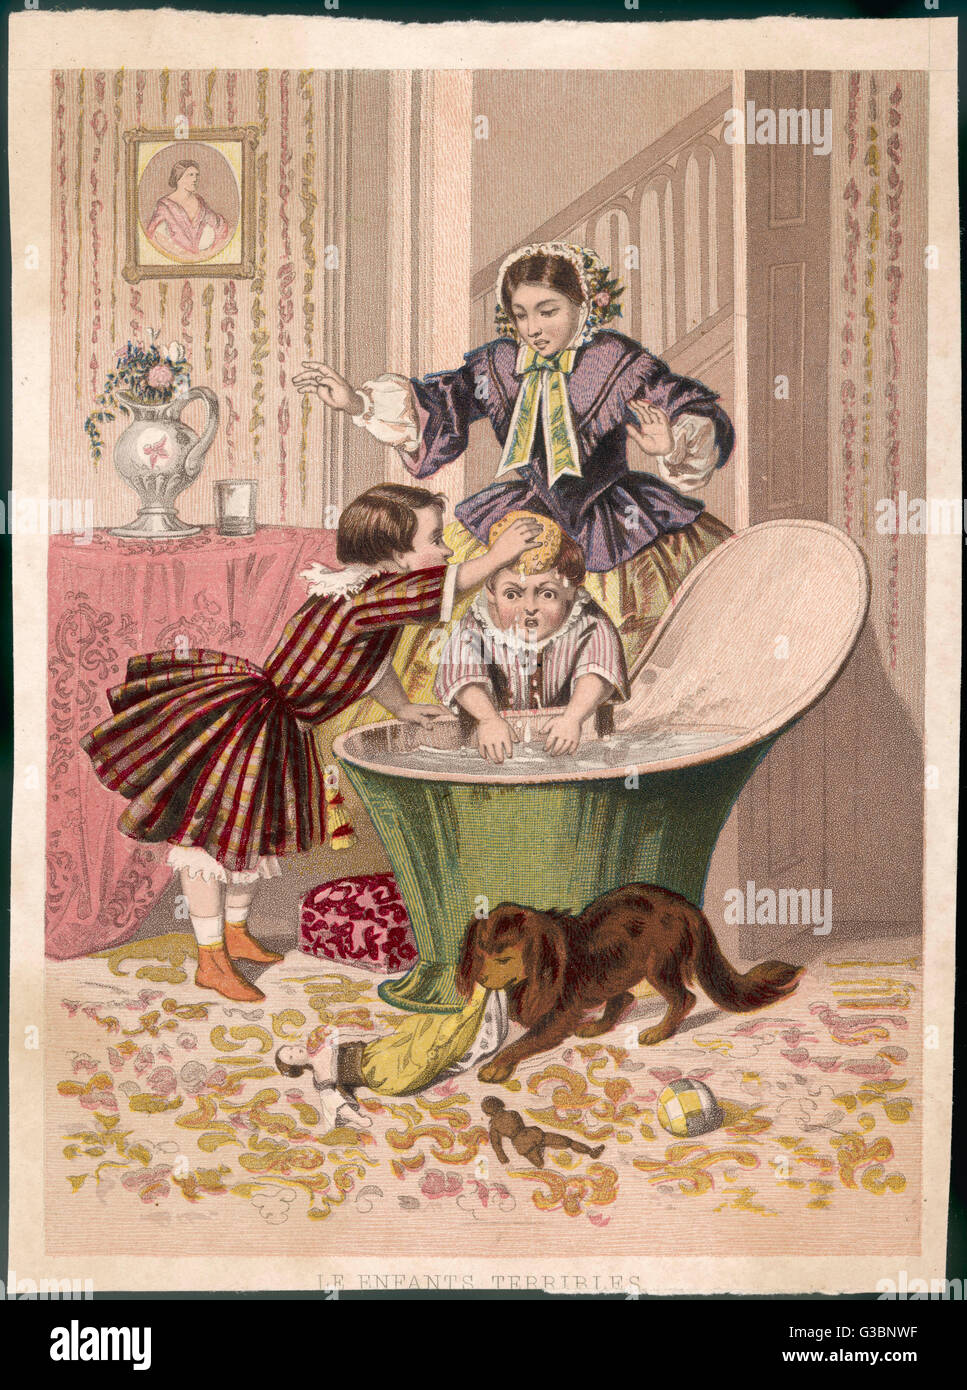 Two badly behaved boys, both  dressed in frocks, have a  water fight in a hip bath much  to the horror of mama. - Stock Image